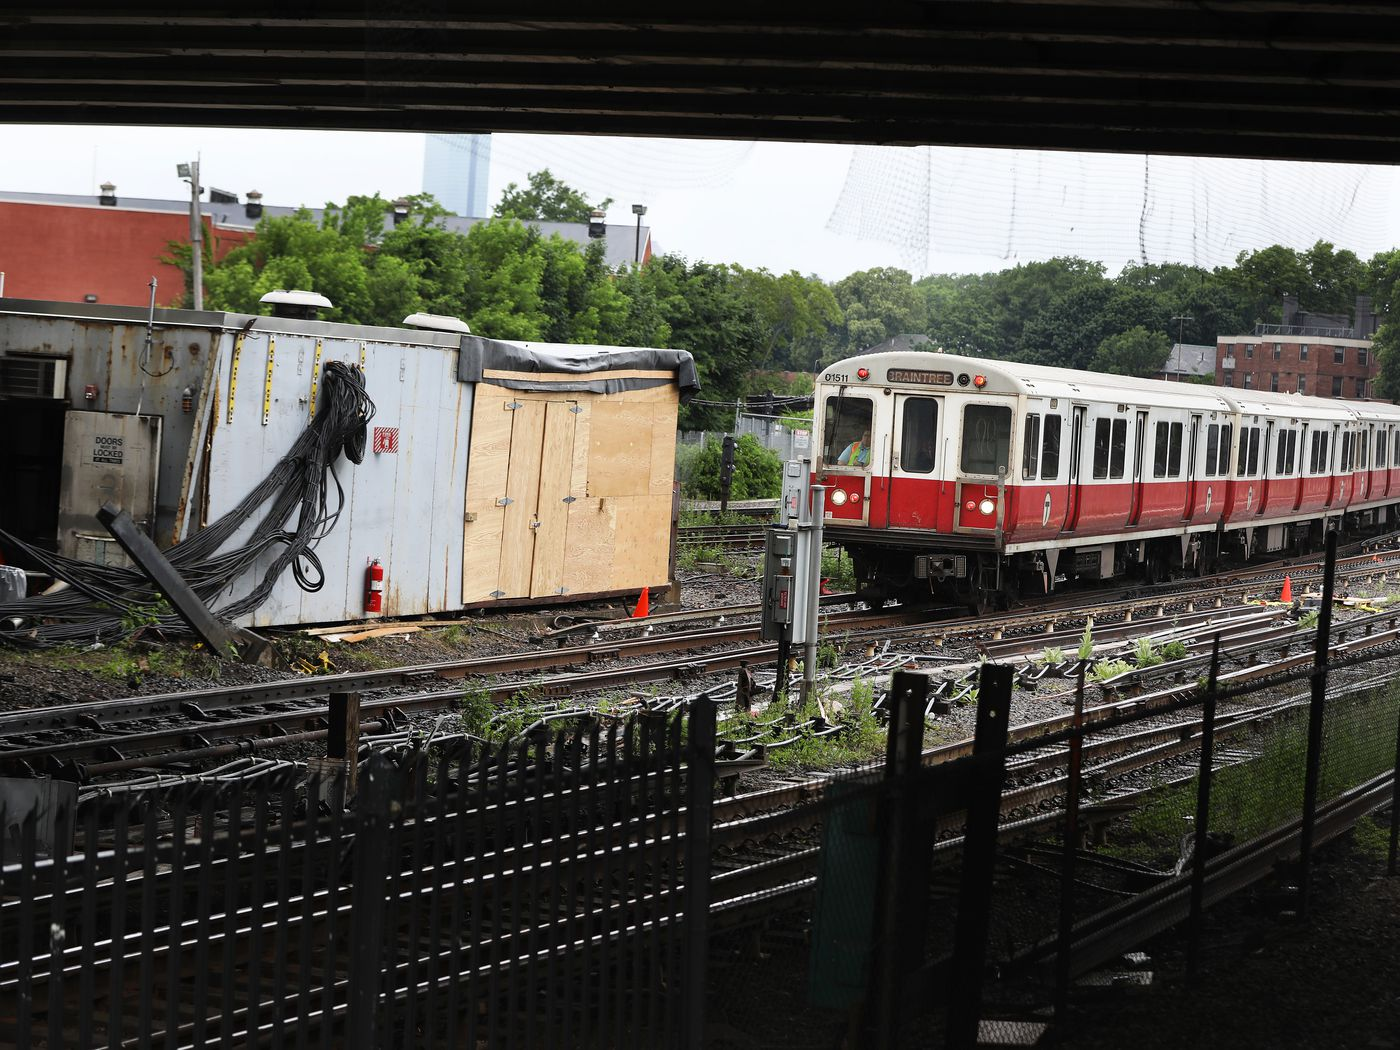 Red Line service expected to return to normal in October, MBTA says